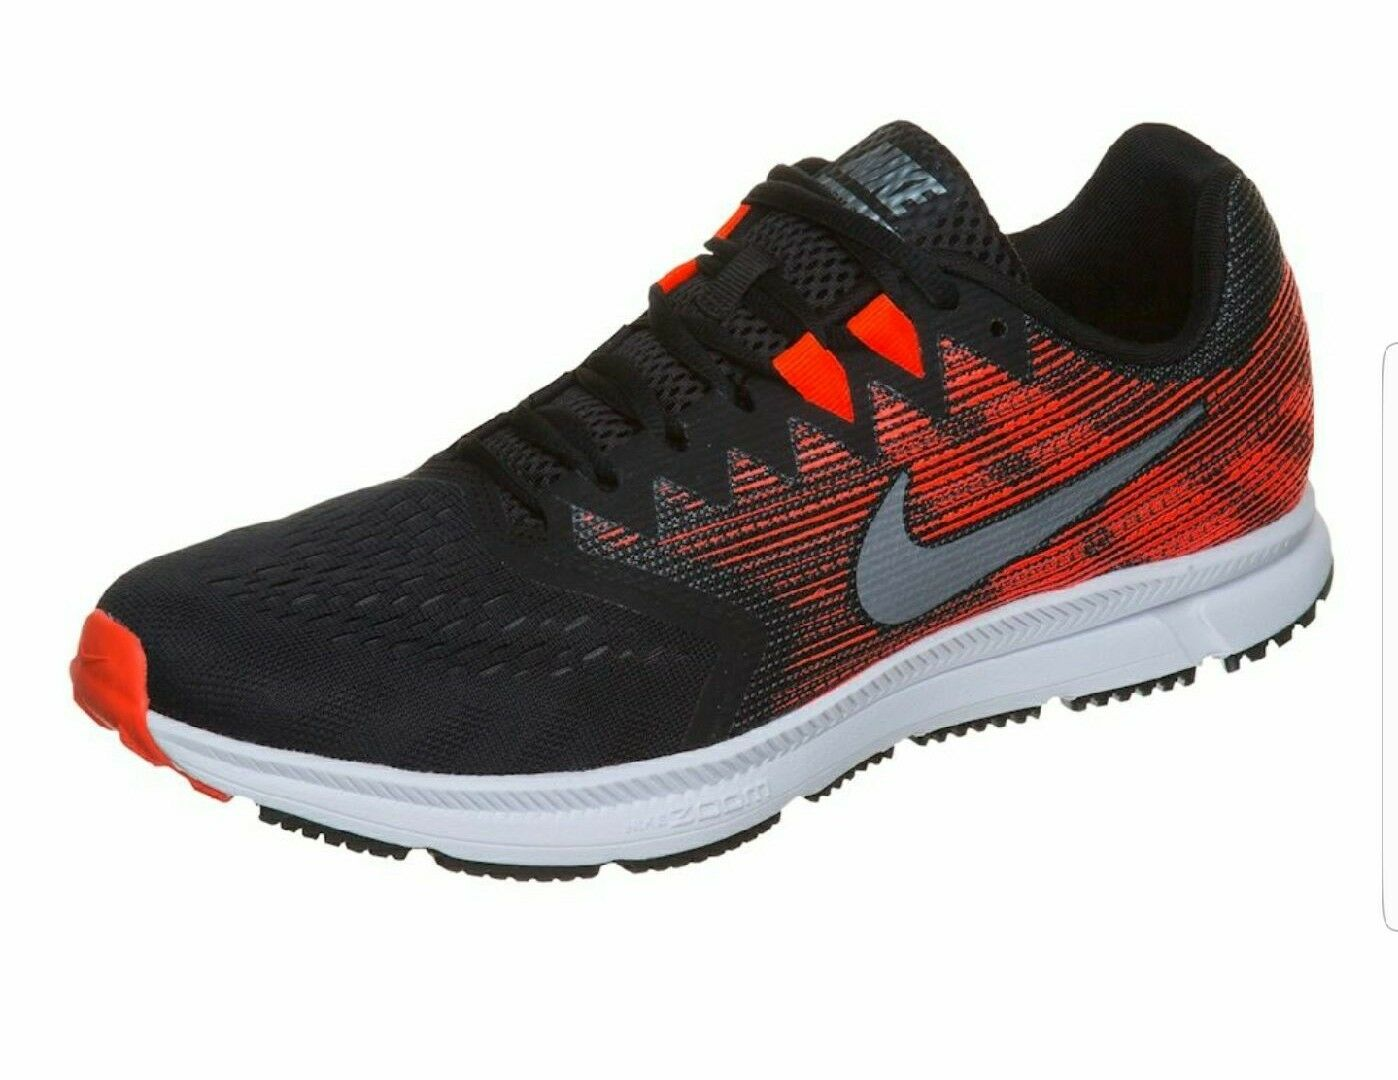 6ffb7479c50 NEW MENS NIKE ZOOM SPAN 2 RUNNING RUNNING RUNNING SHOES TRAINERS size 10  b5ed0a